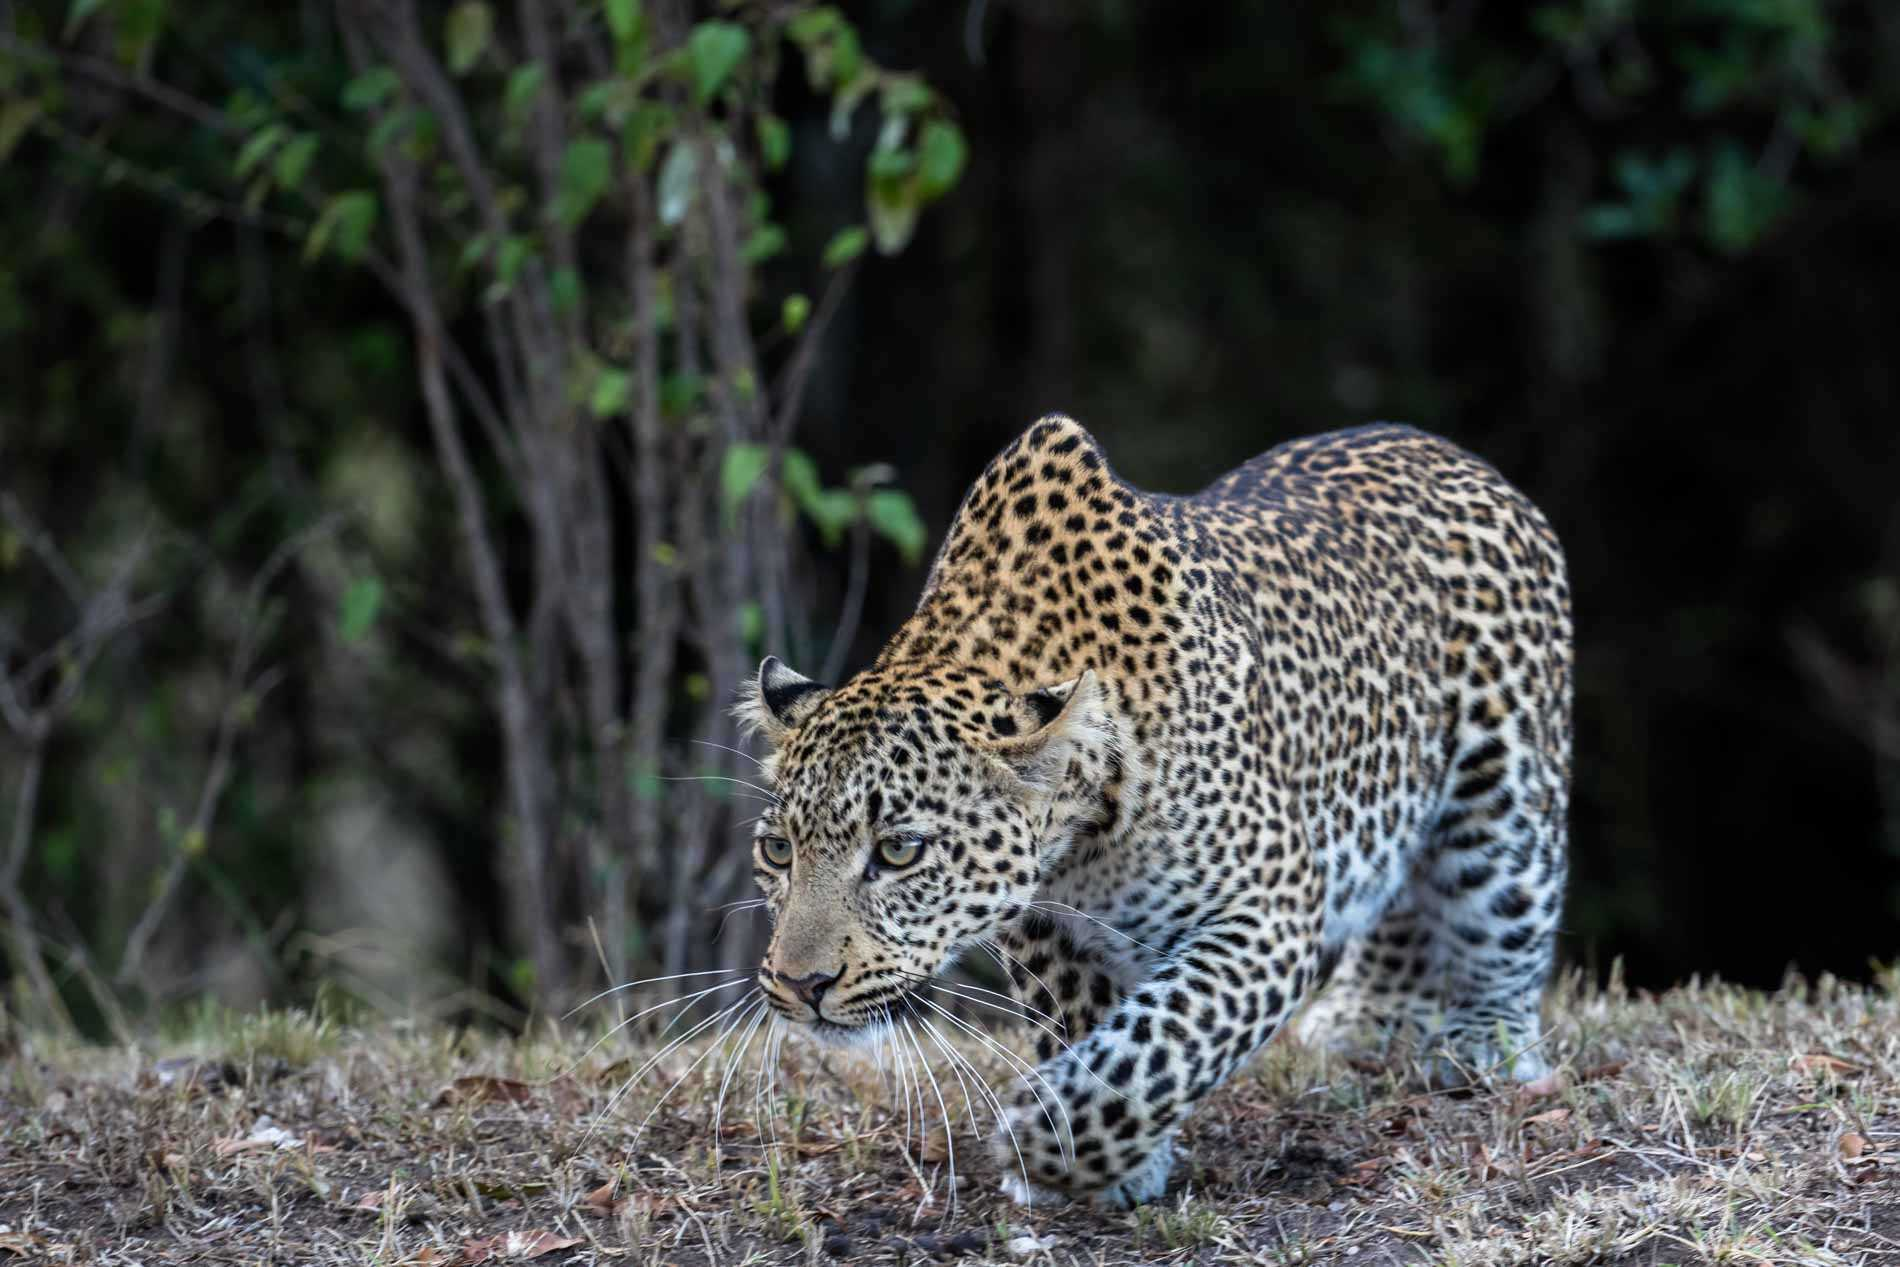 Leopard in the Masai Mara (Image by Paul Goldstein)